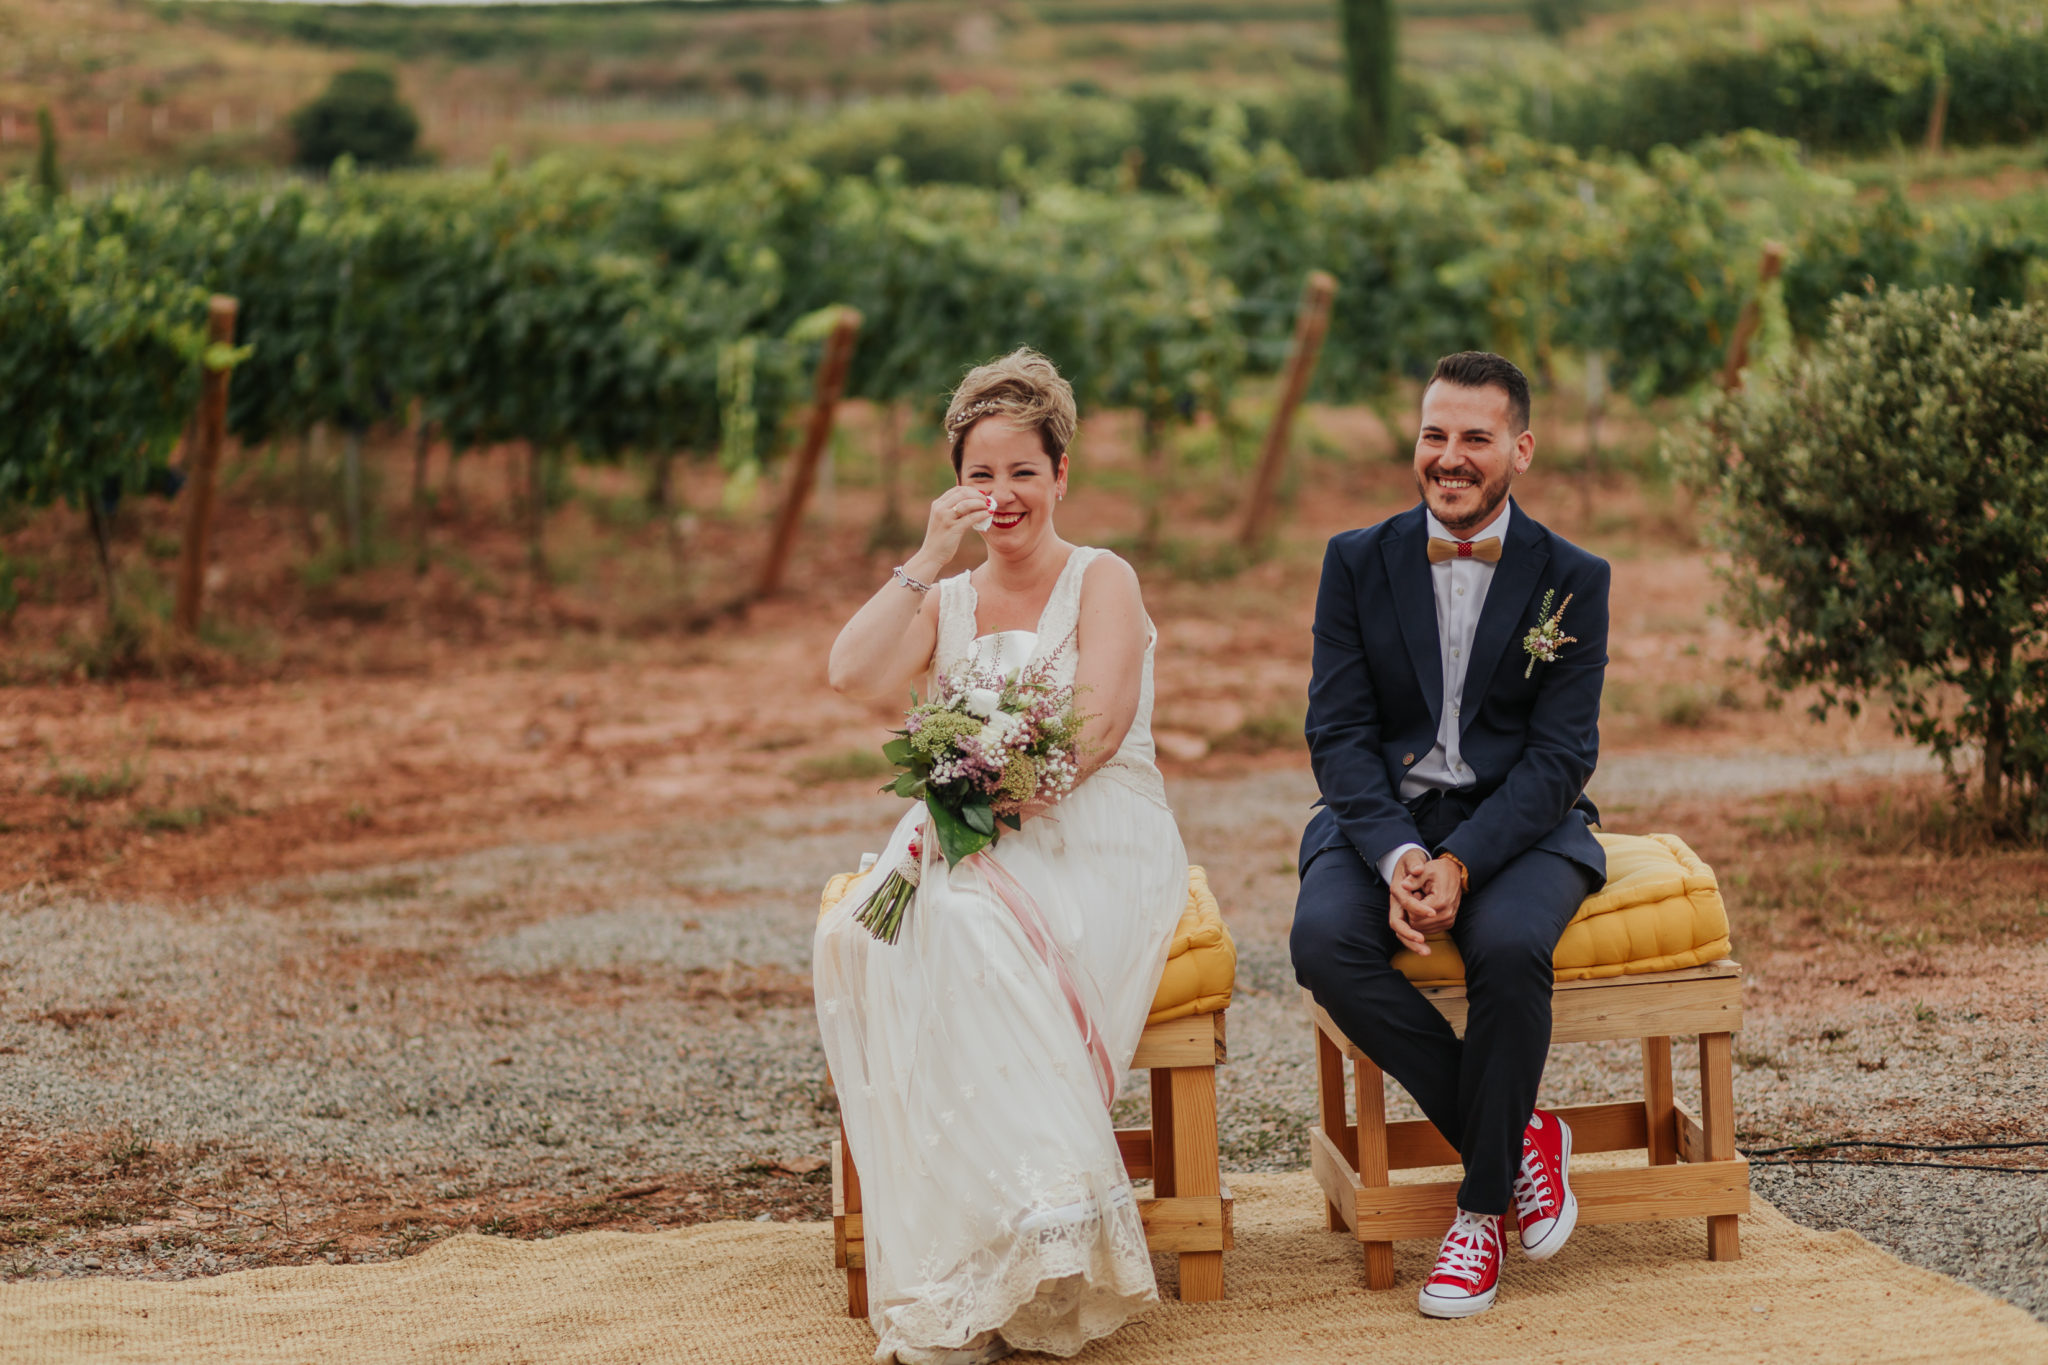 fotógrafo de boda barcelona :: barcelona wedding photographer :: barcelona indie wedding :: ceremonia en viñedo :: country wedding :: boda entre viñas :: boda en viñedo :: casaments al bosc